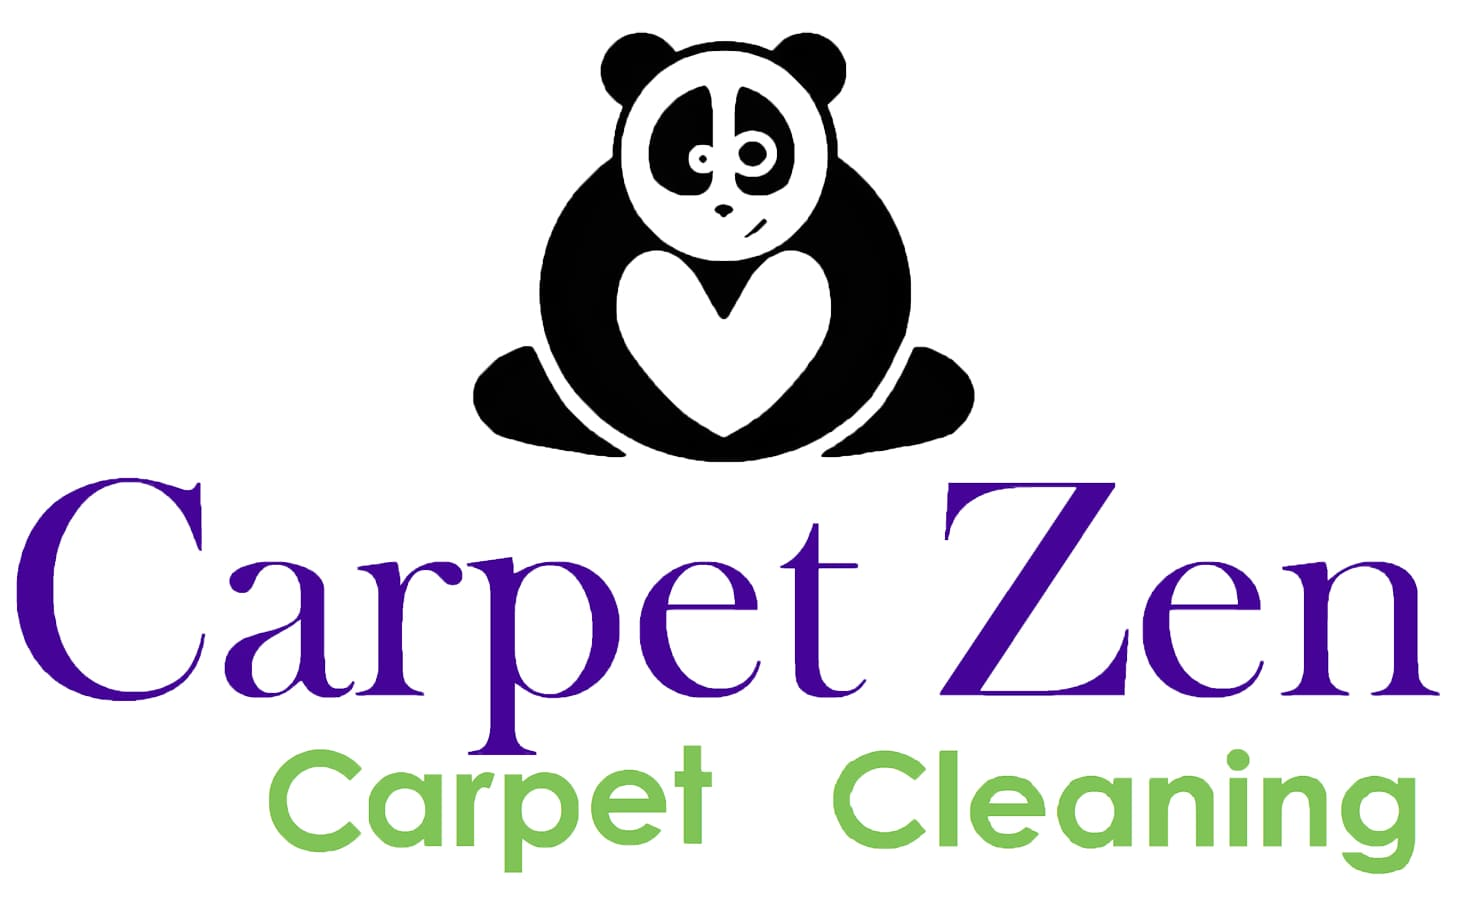 Carpet Cleaning Austin Groupon Best Carpet In The World